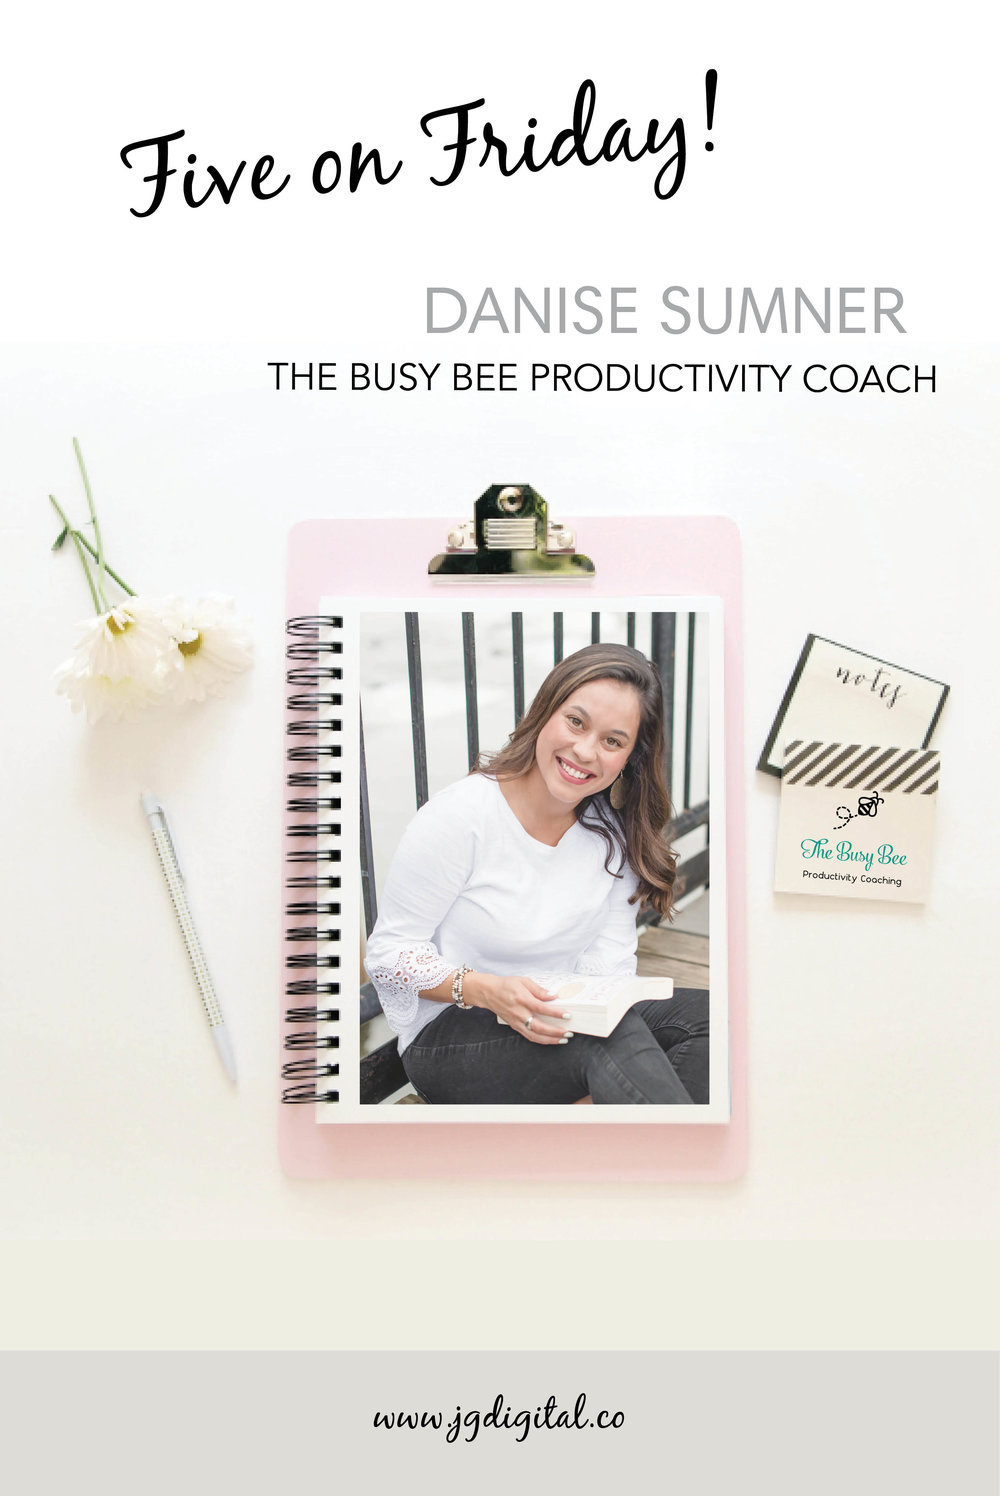 Women_in_Business_Danise_Sumner_Busy_Bee_Productivity_Coaching